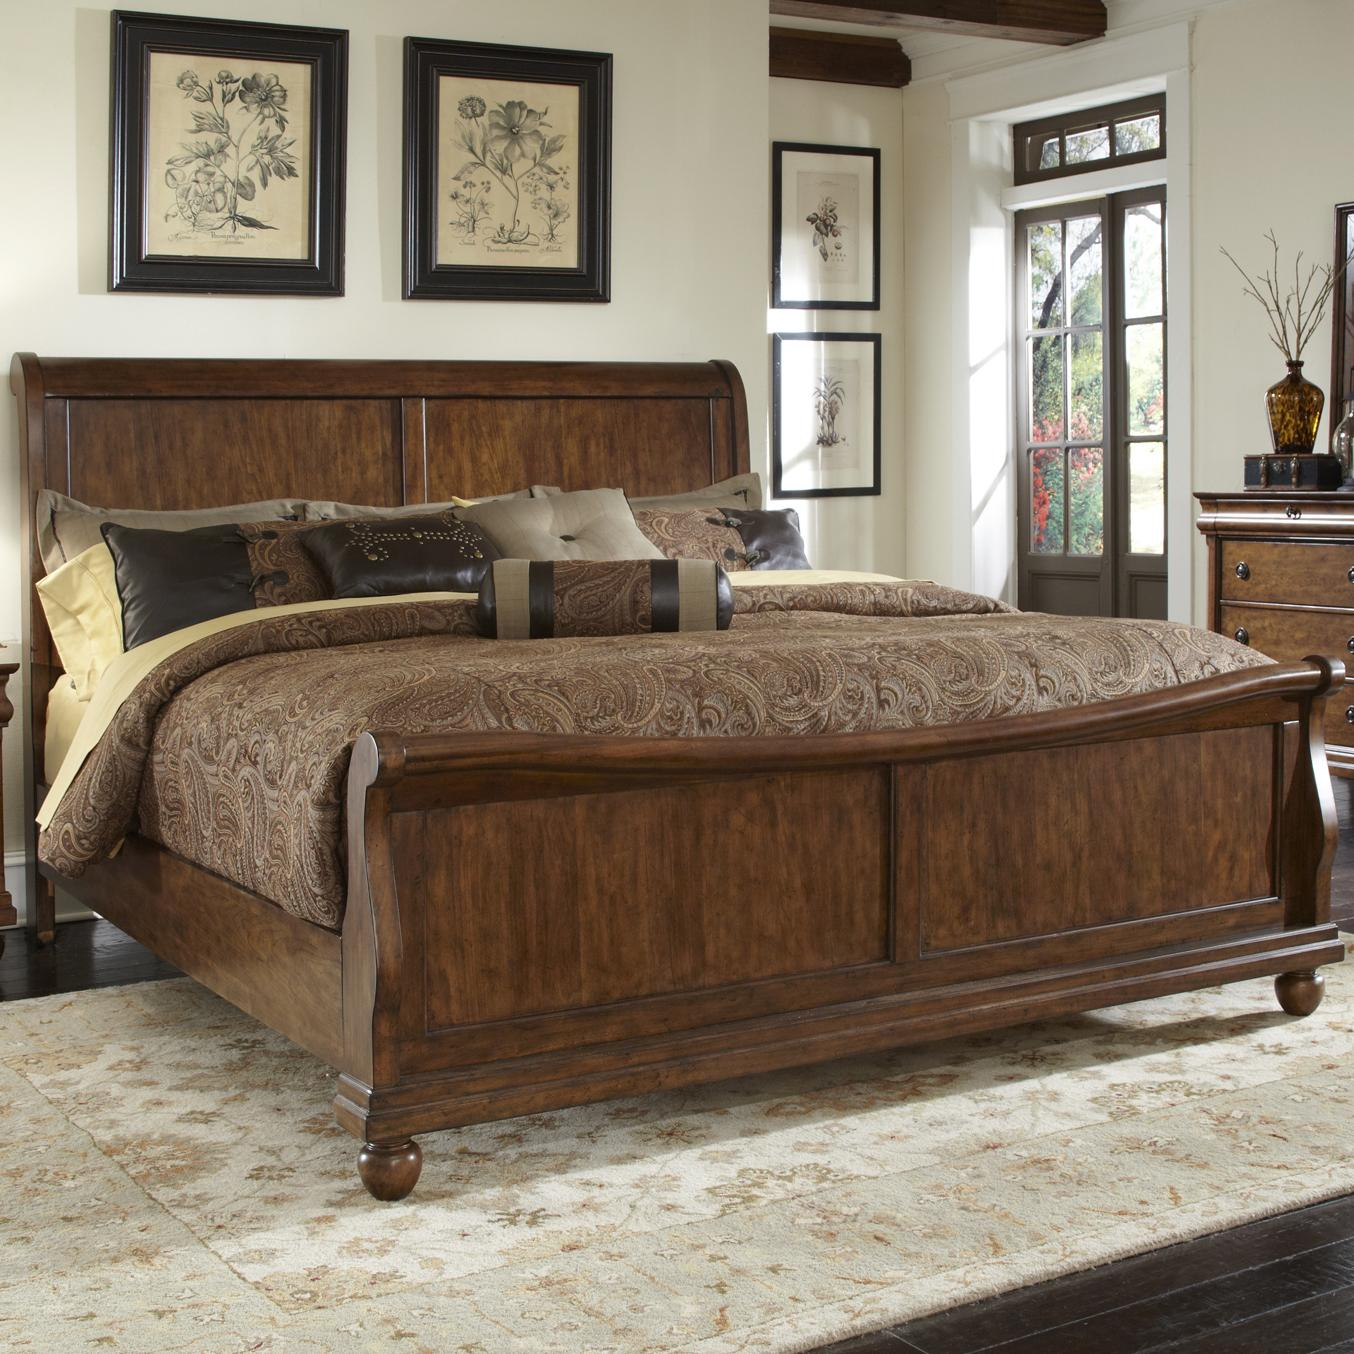 Rustic Traditions King Sleigh Bed Set by Libby at Walker's Furniture